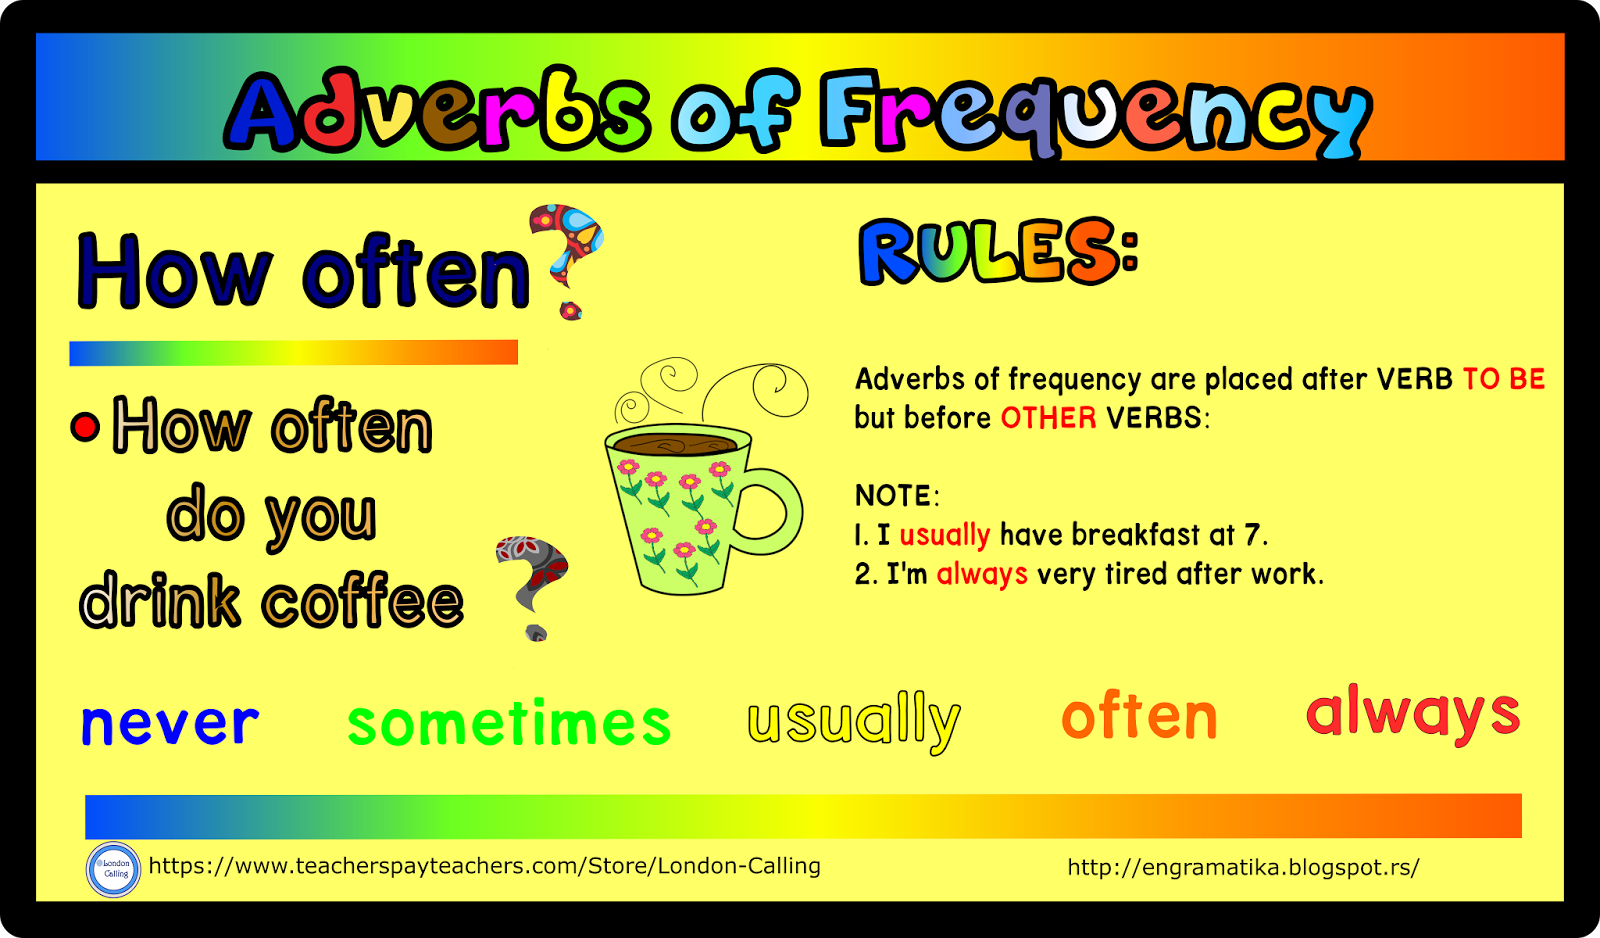 https://www.teacherspayteachers.com/Product/Adverbs-of-Frequency-Poster-FREEBIE-2570988